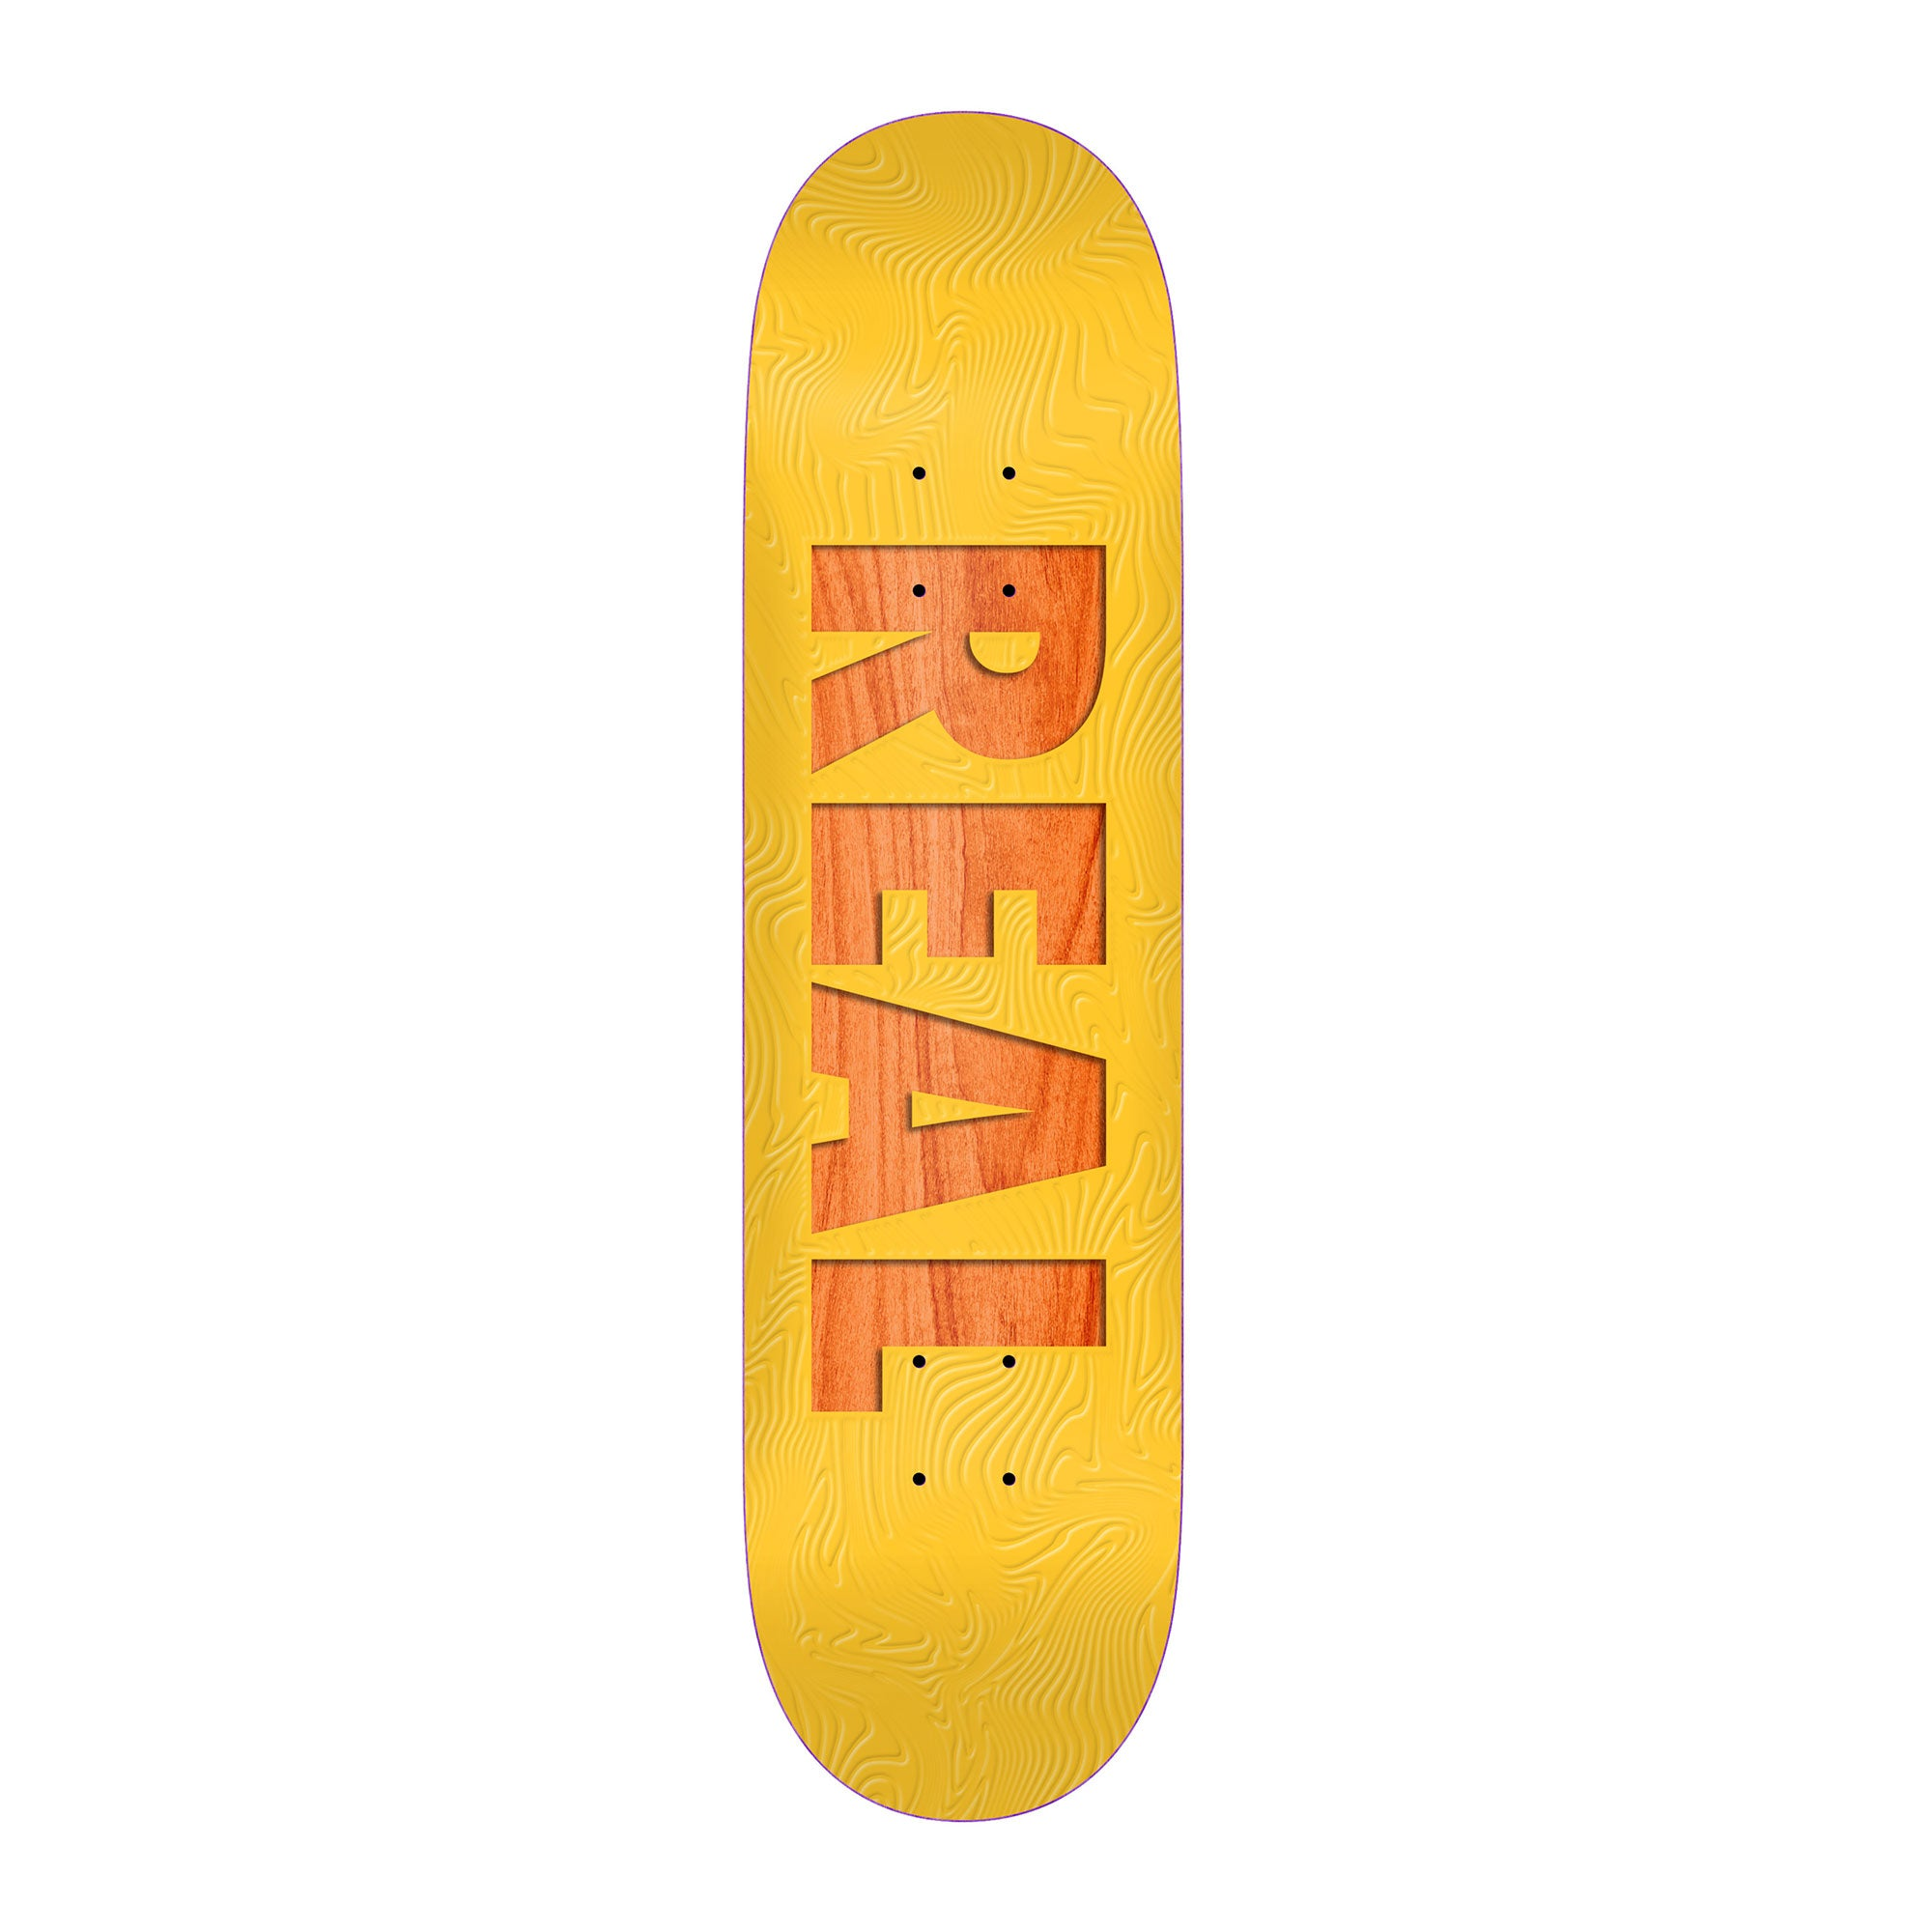 Real Bold Team Deck Product Photo #1